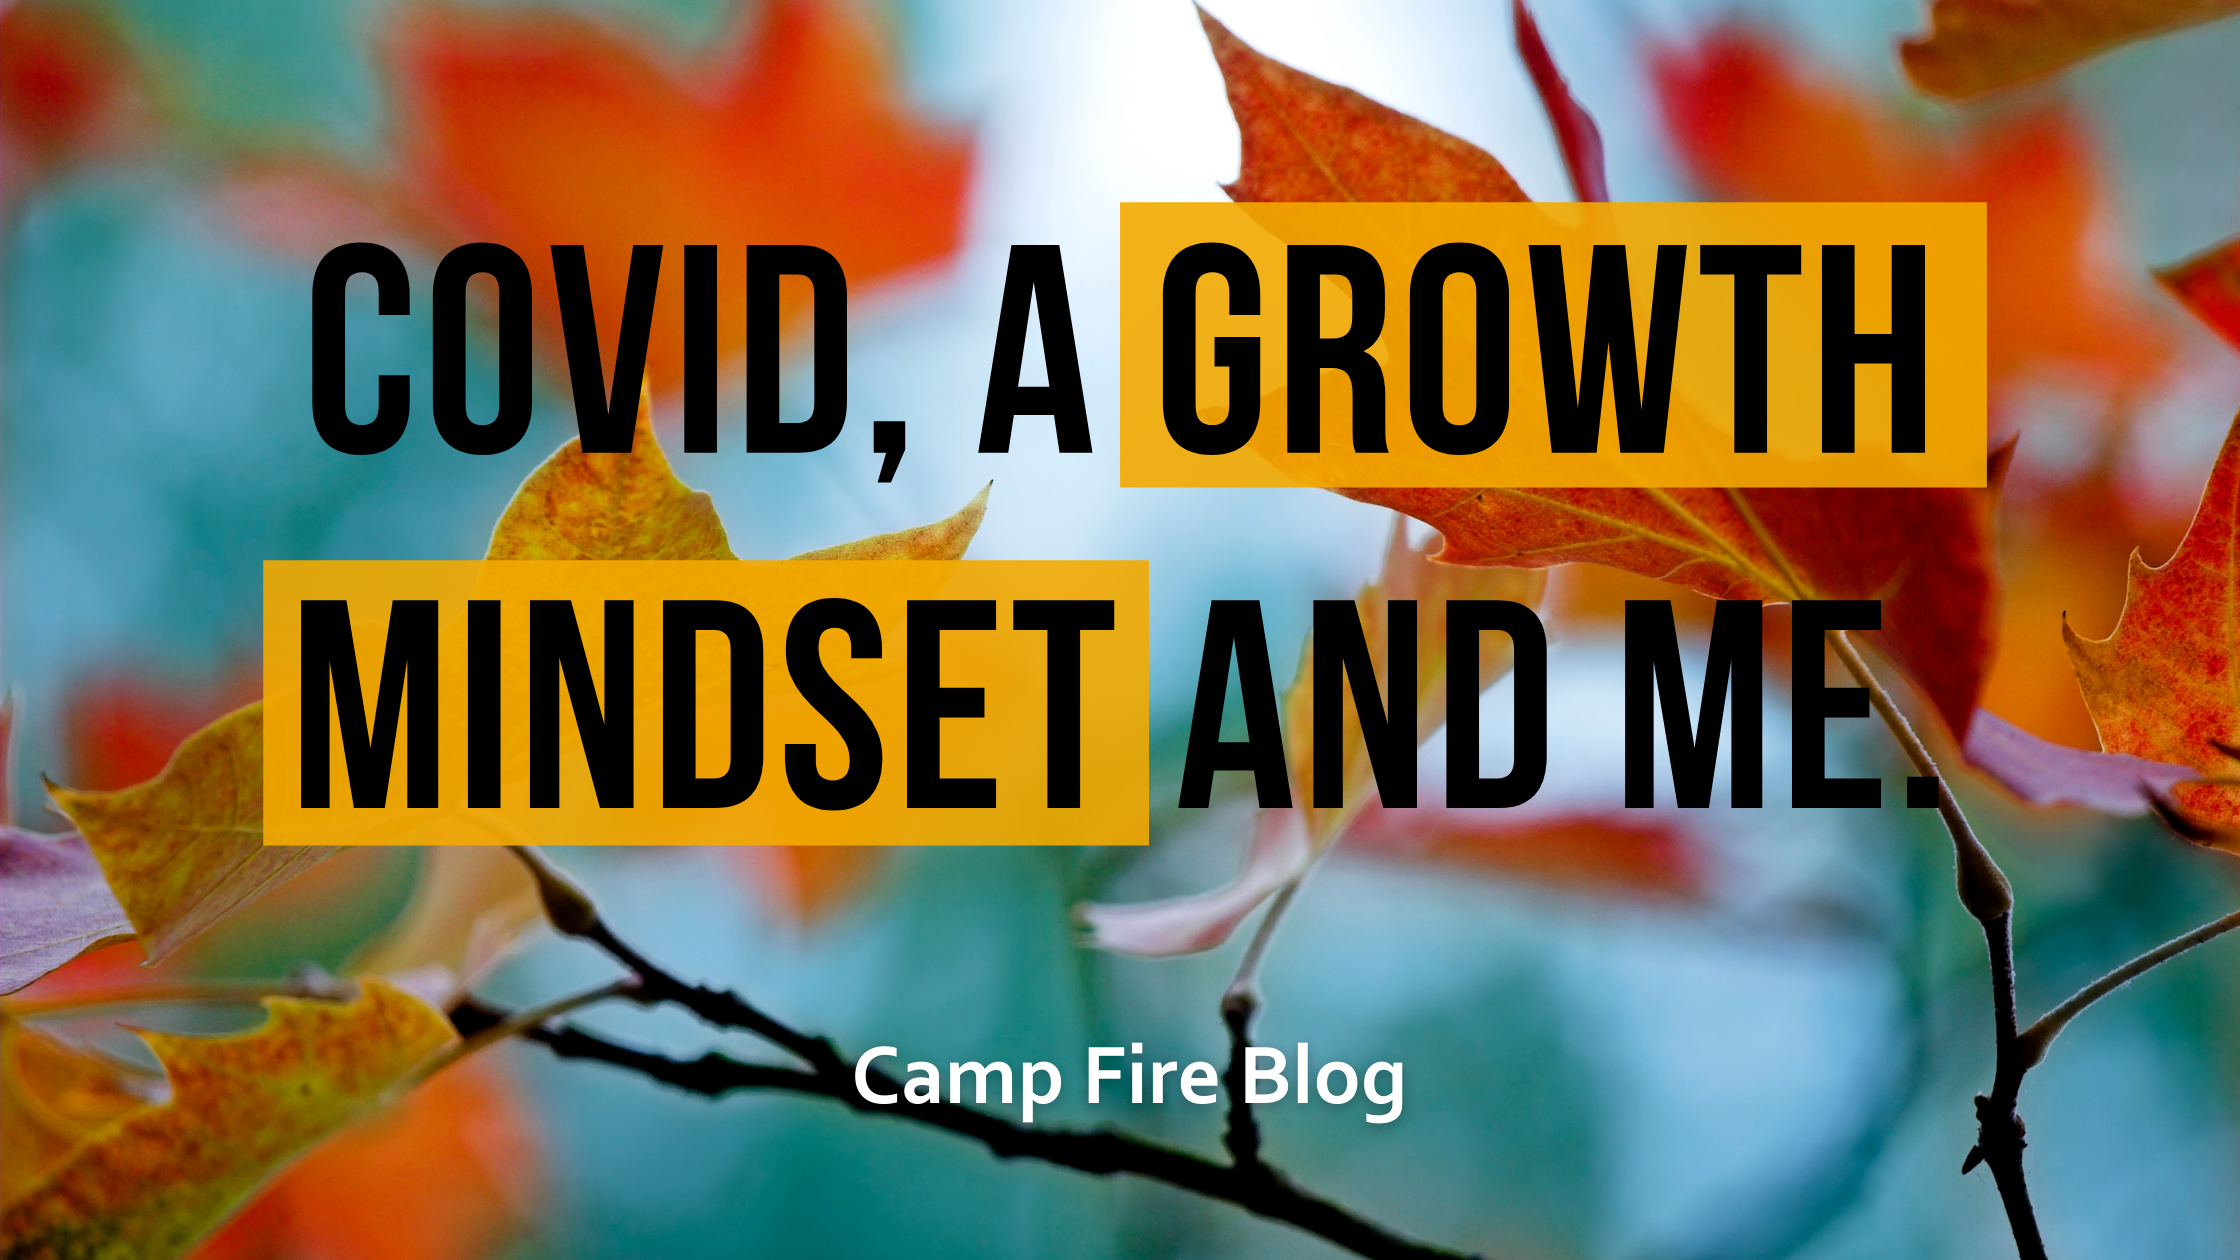 Covid, a growth mindset and me text over image of fall leaves